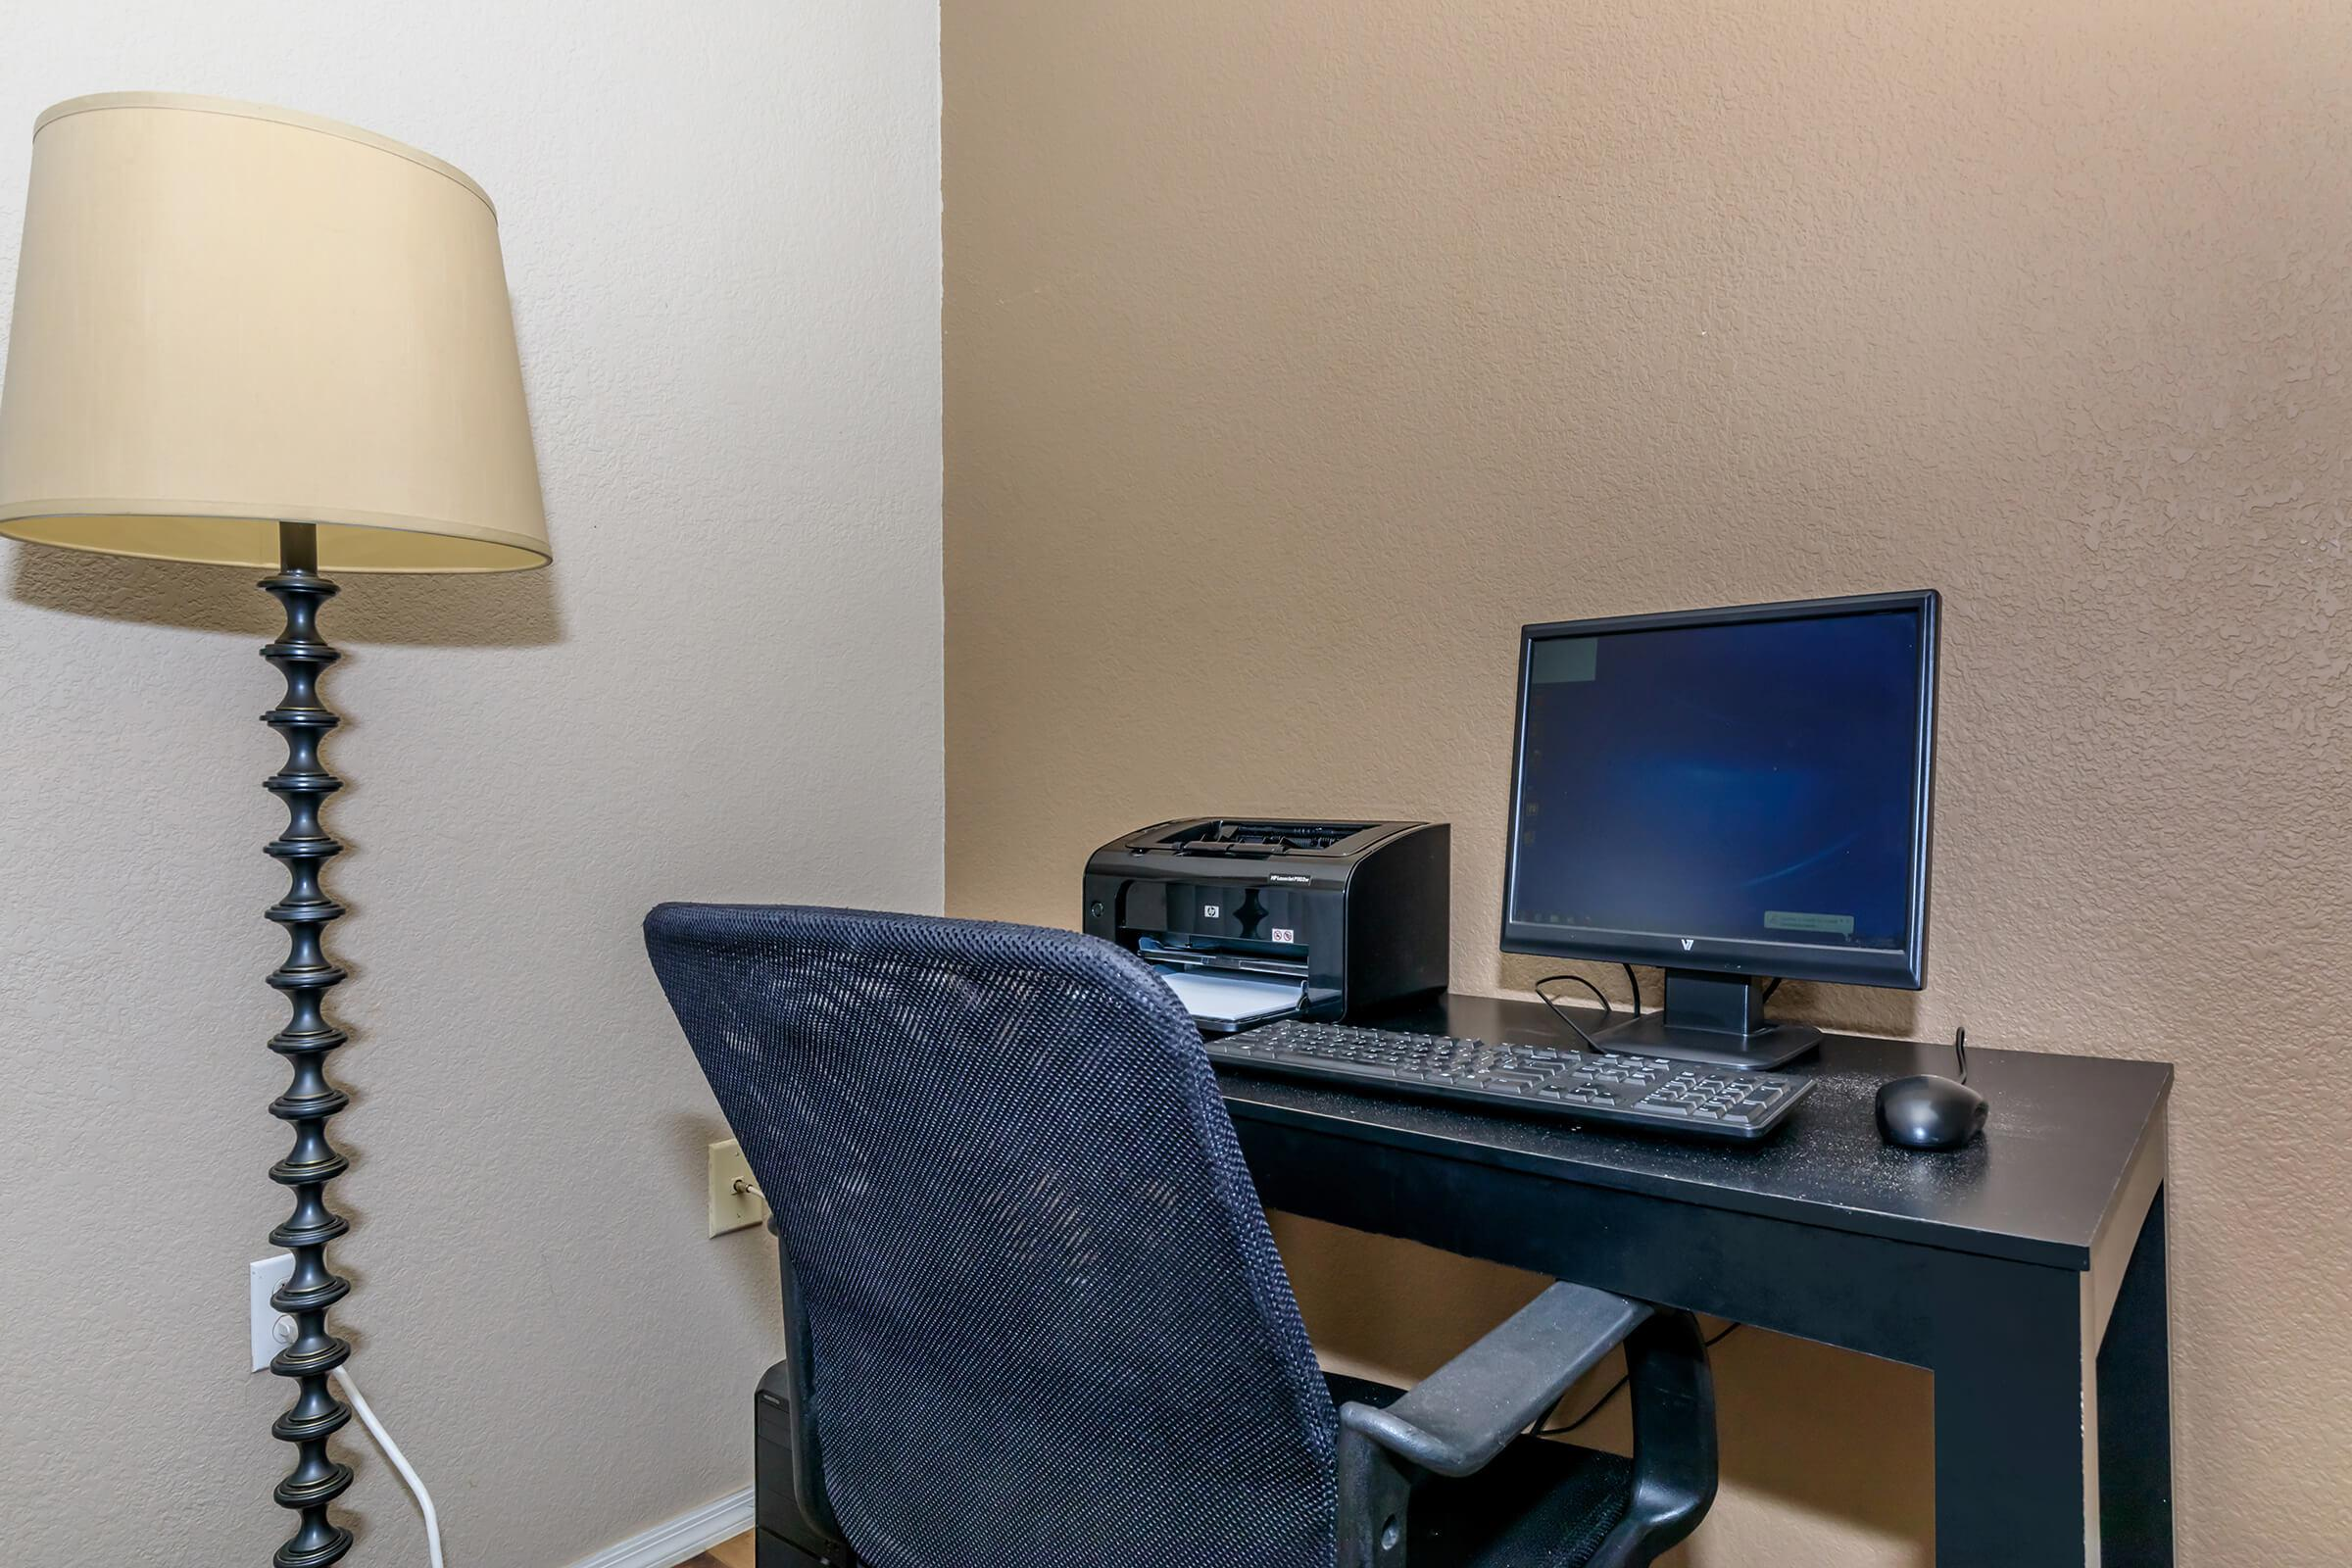 a desk with a laptop computer sitting on top of a chair